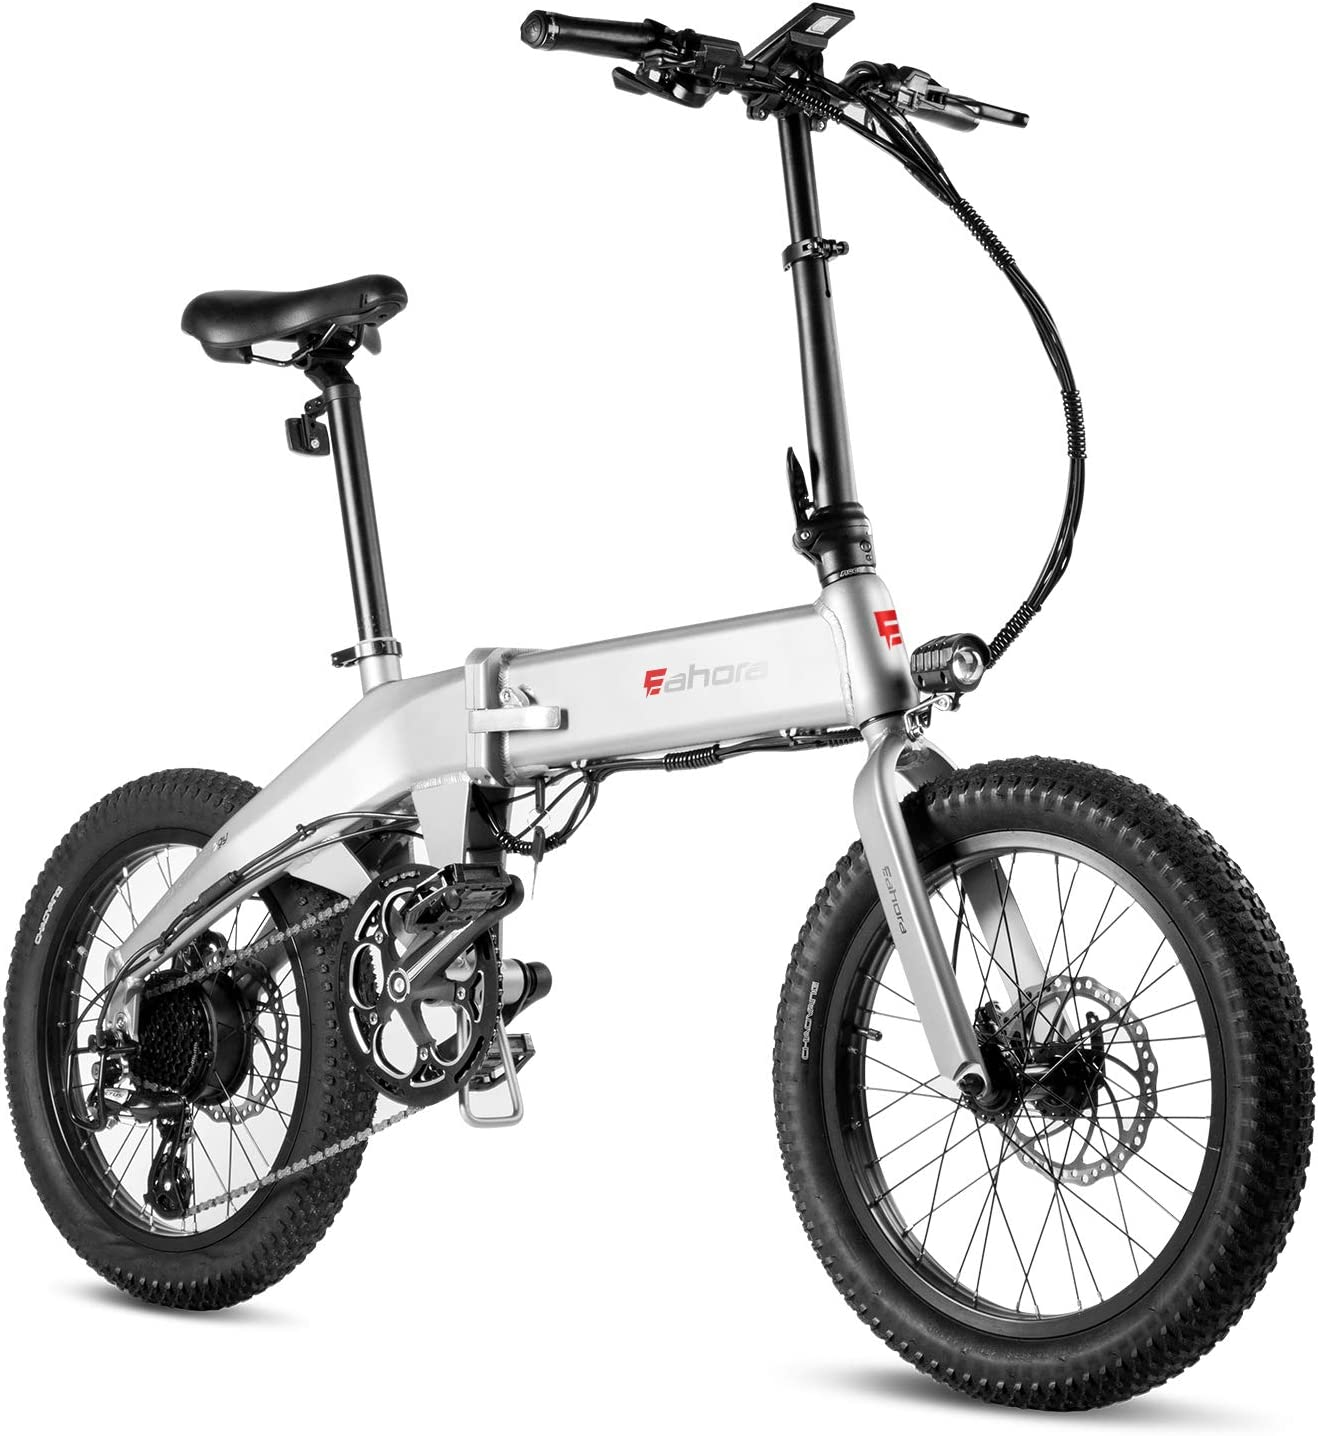 Eahora X6 20-inch Folding Electric Bicycle 48V 13Ah Electric Bike Removable Lithium-ion Battery 350W City Commuter Ebike for Adults E-PAS Recharge System 8 Speed